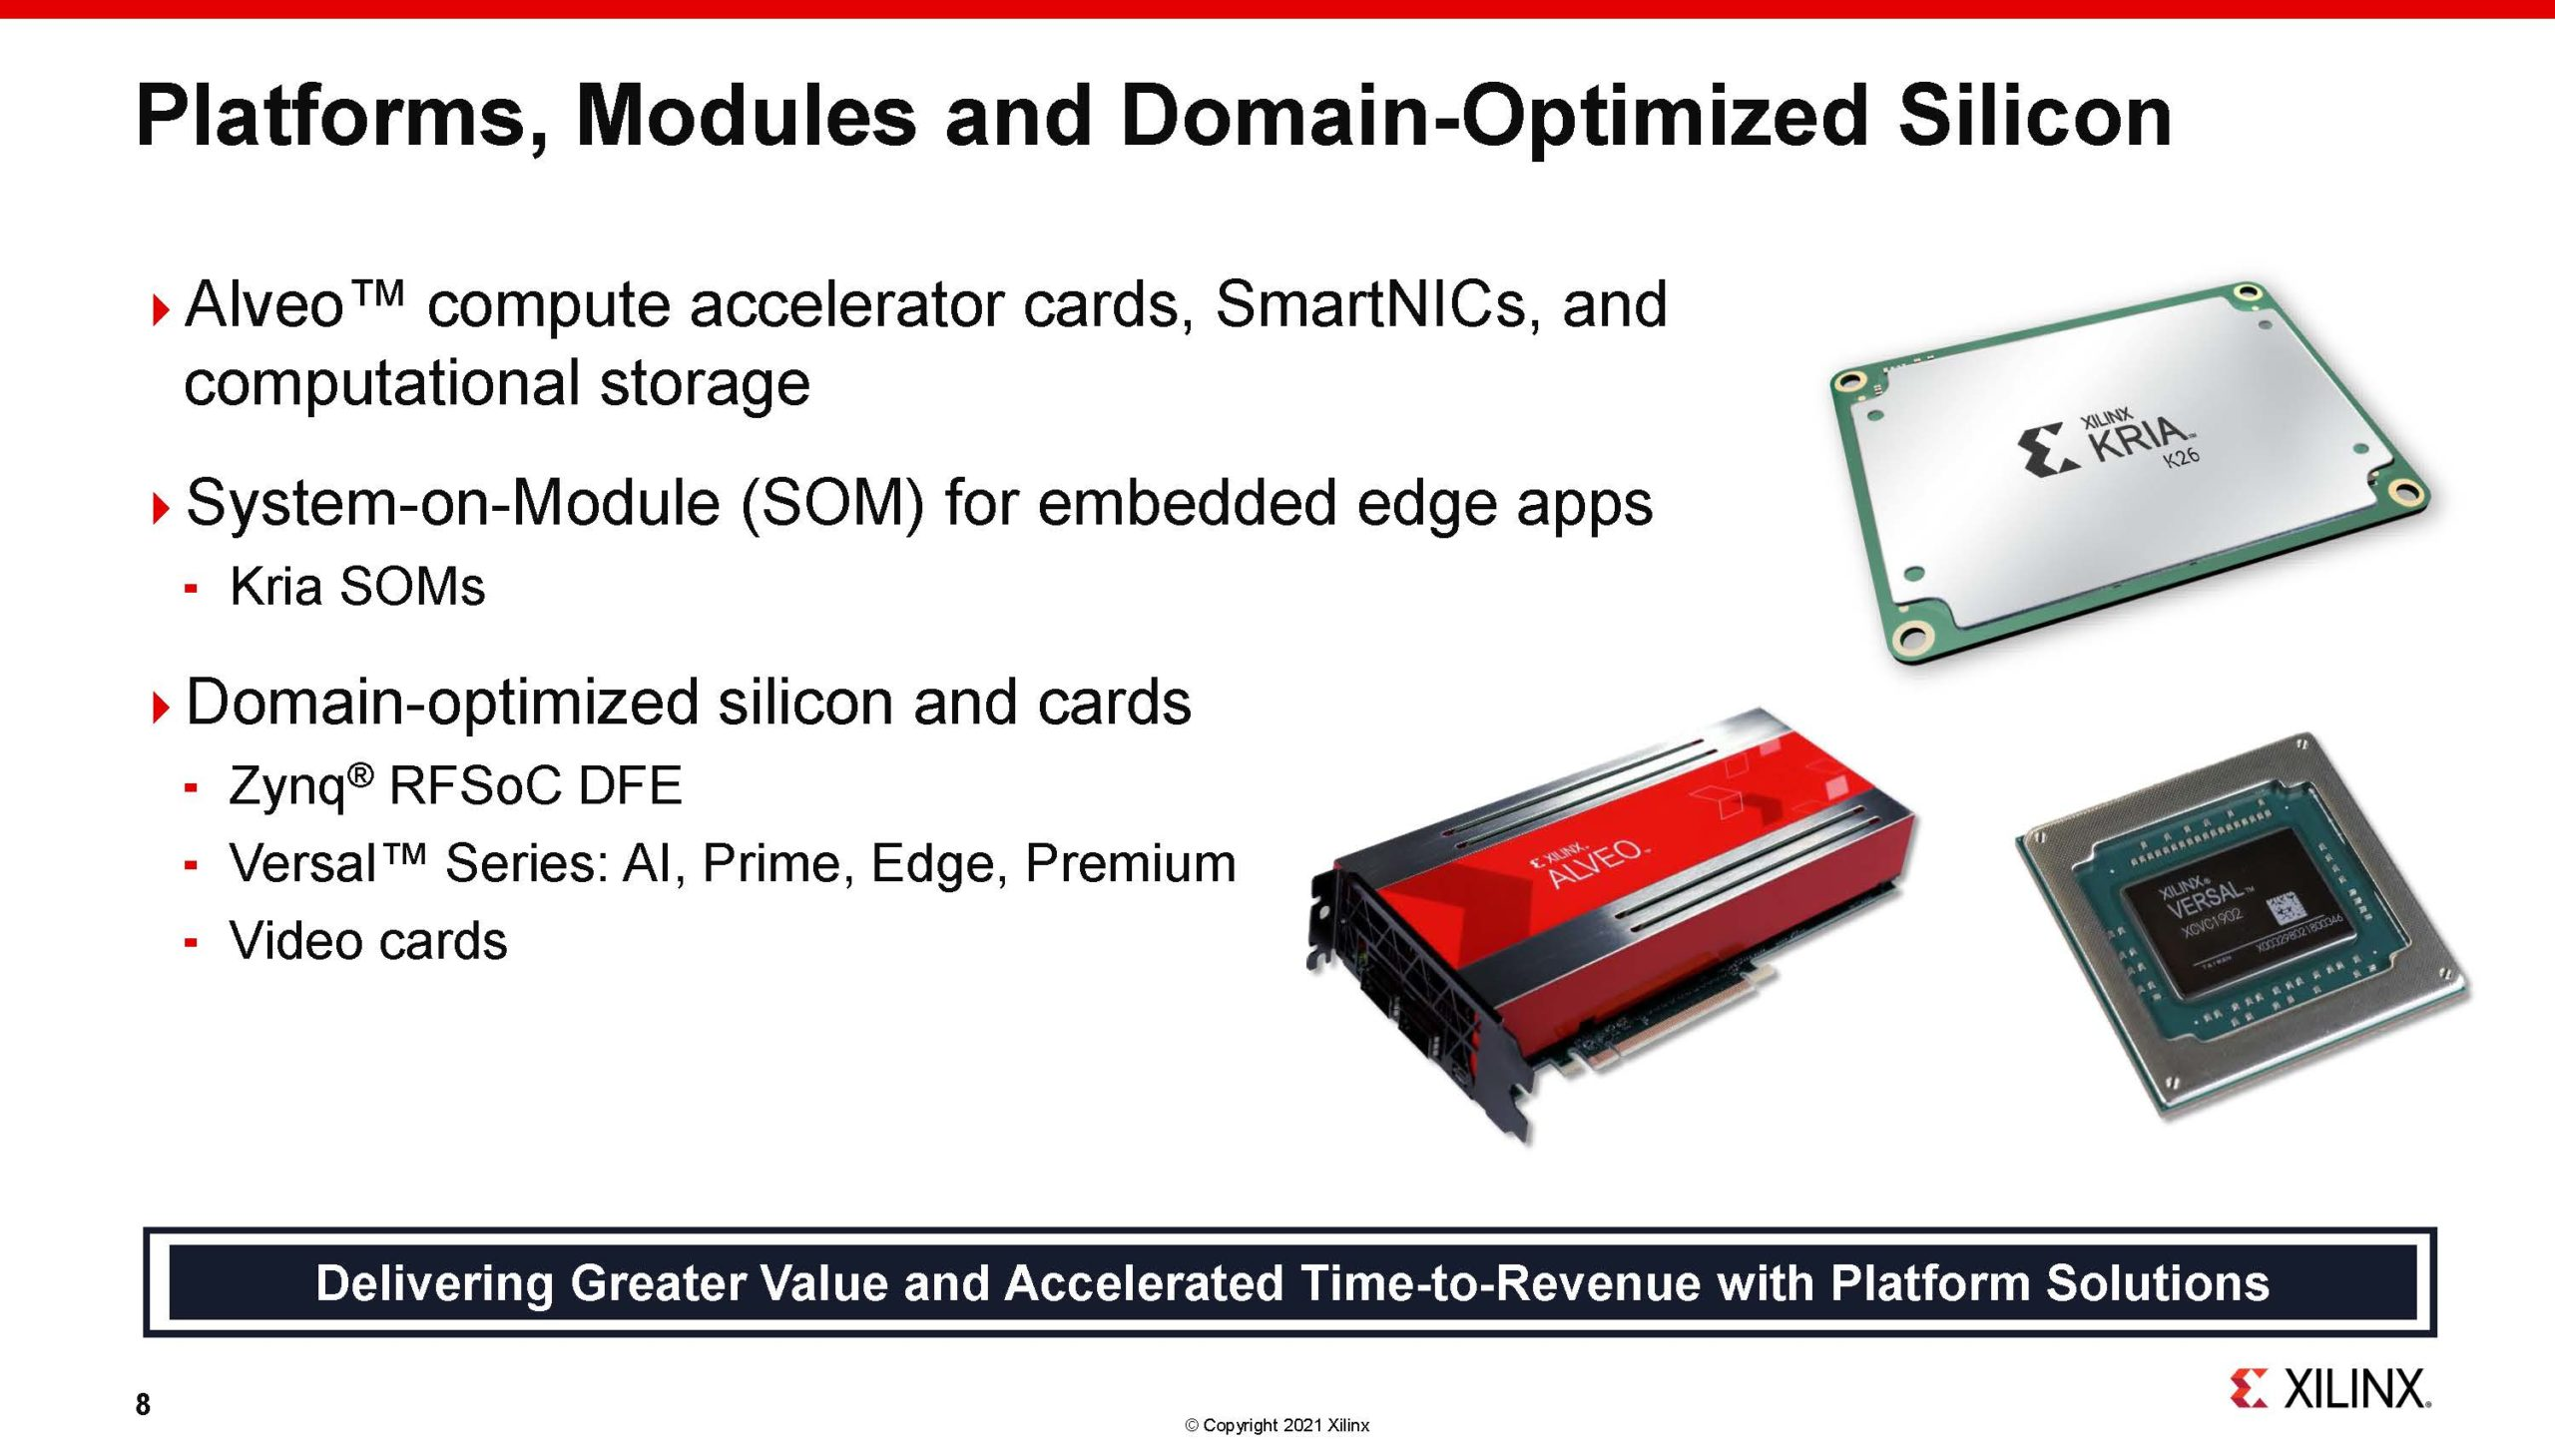 Xilinx Victor Peng 1H2021 Platforms Modules And Silicon